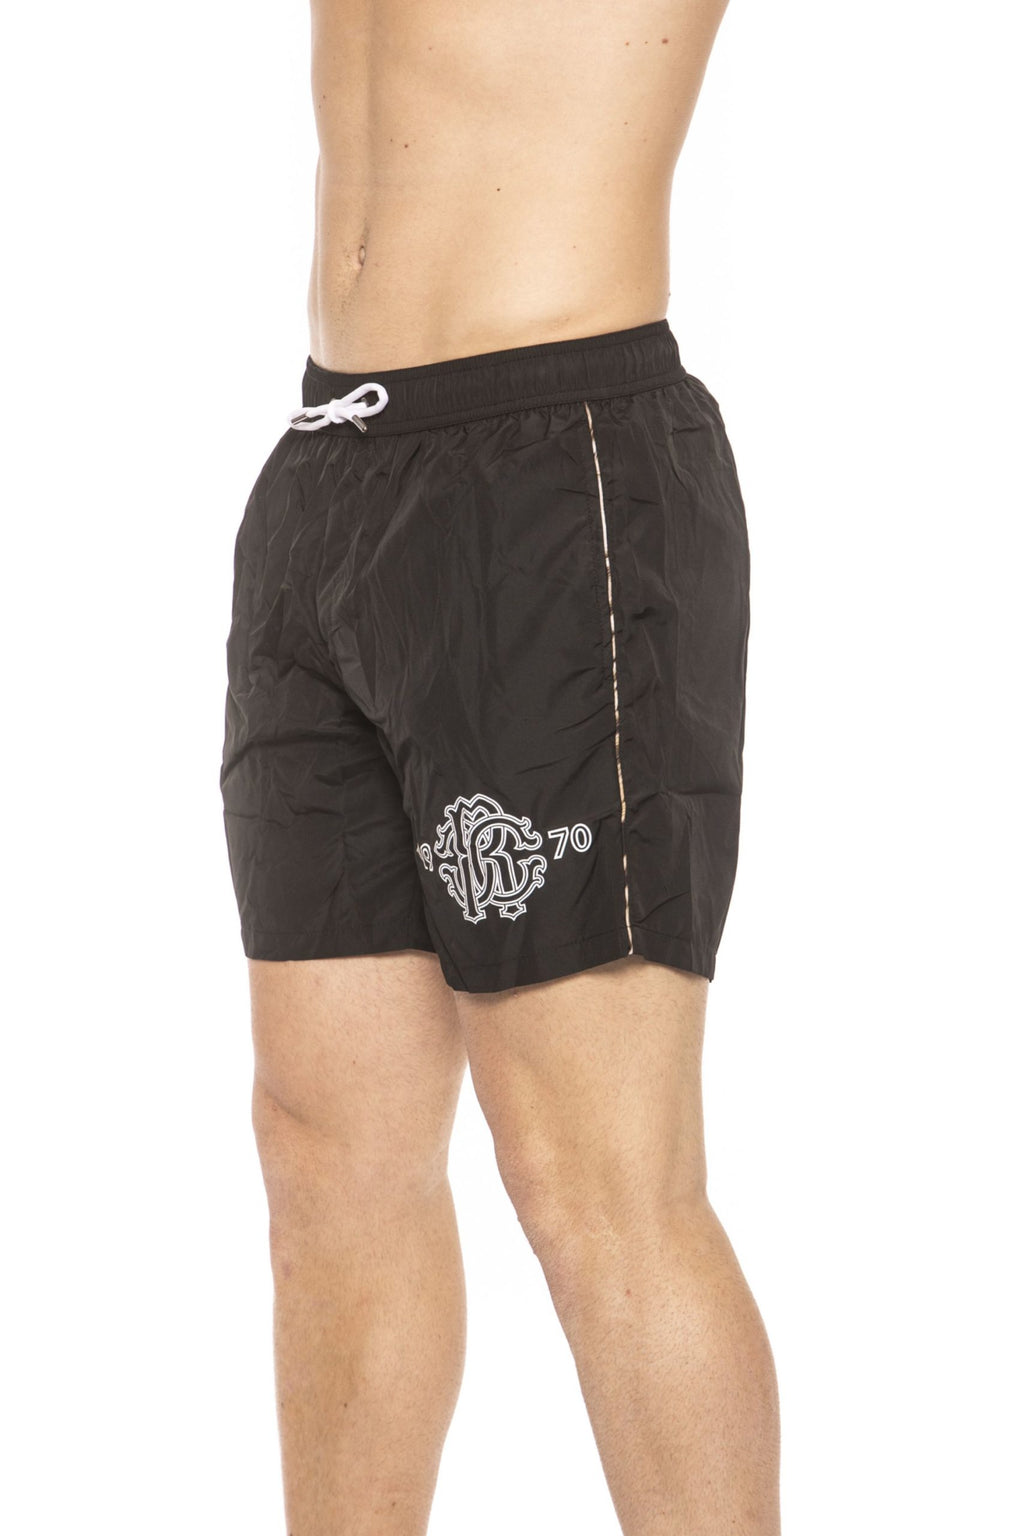 Black Beachwear Boxer With Pockets. Front Logo Print. Internal Net. Back Pocket. Spotted Edges.